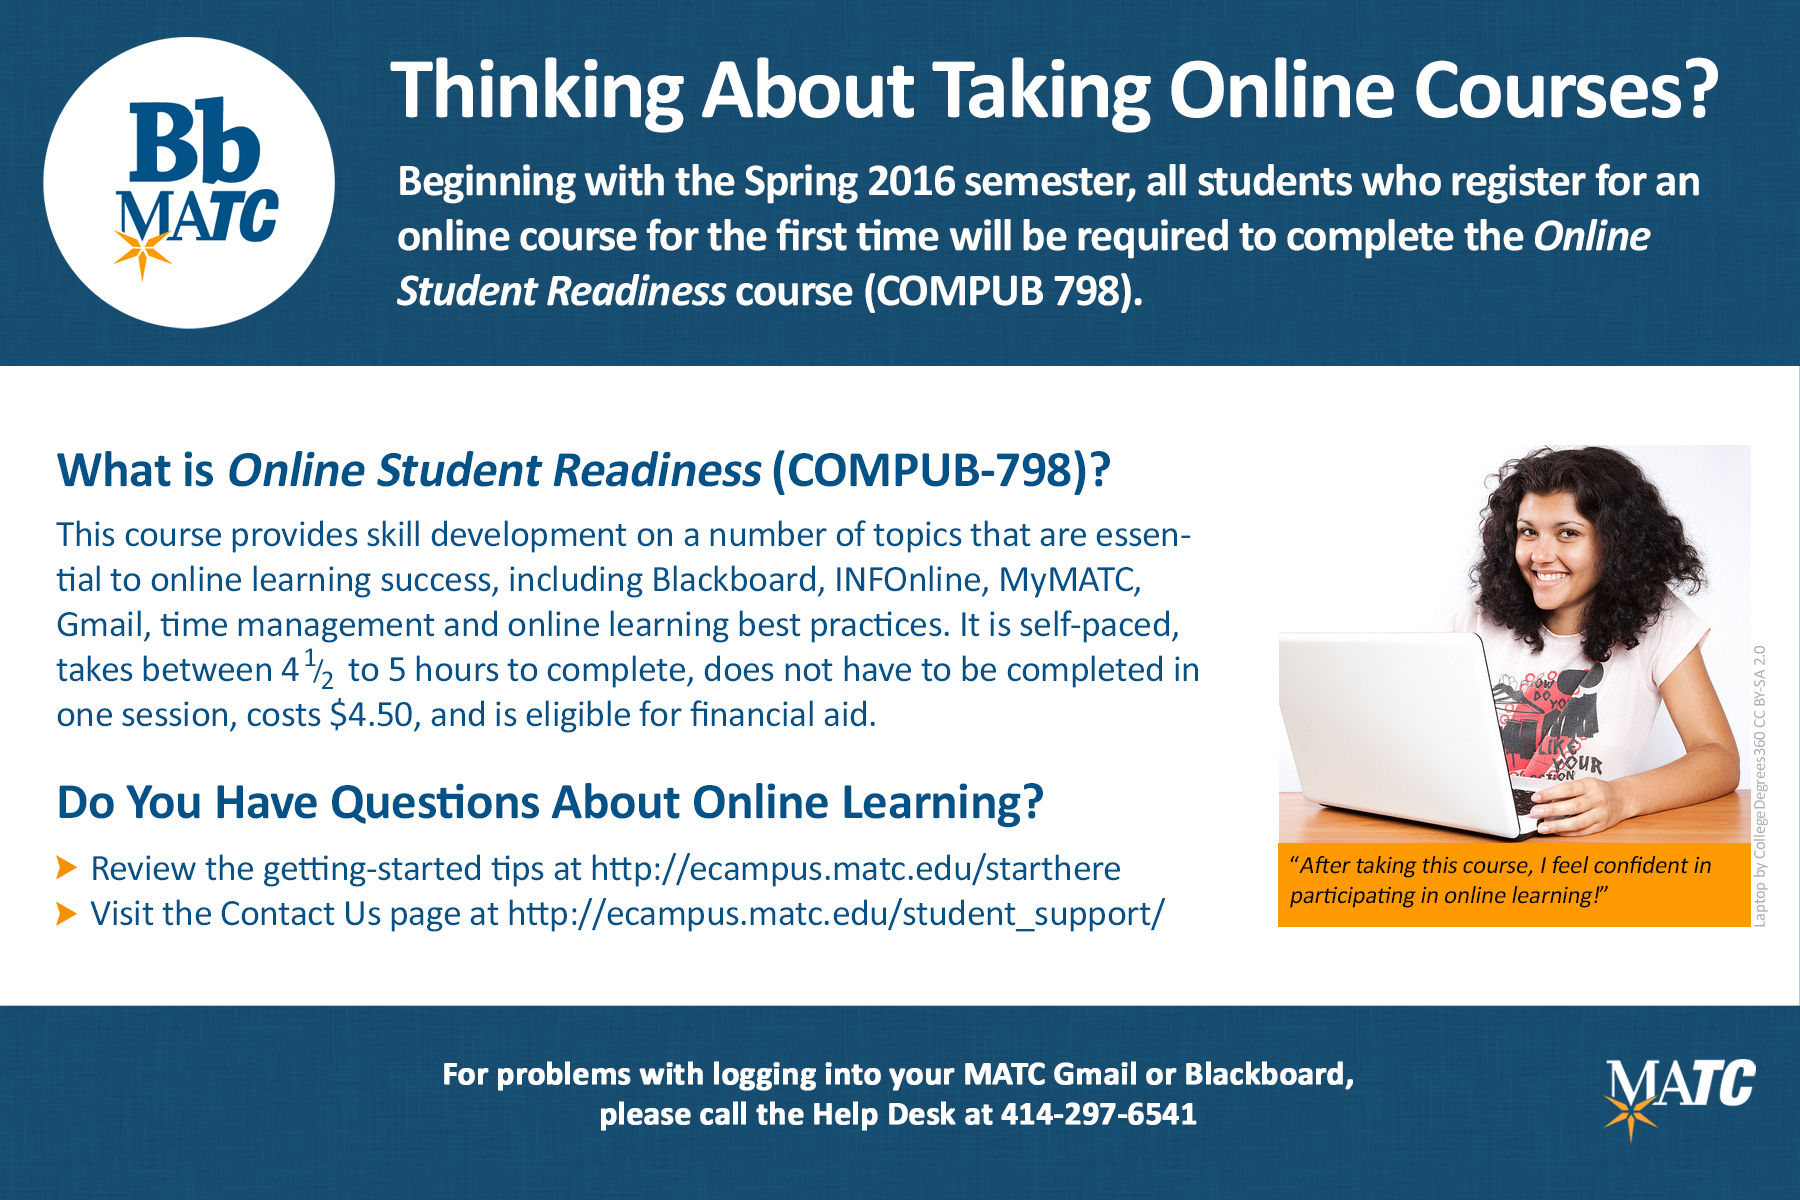 Worksheet It Online Learning Review milwaukee area technical college student support online learning this self paced course provides skill development on a number of topics that are essential to success the course